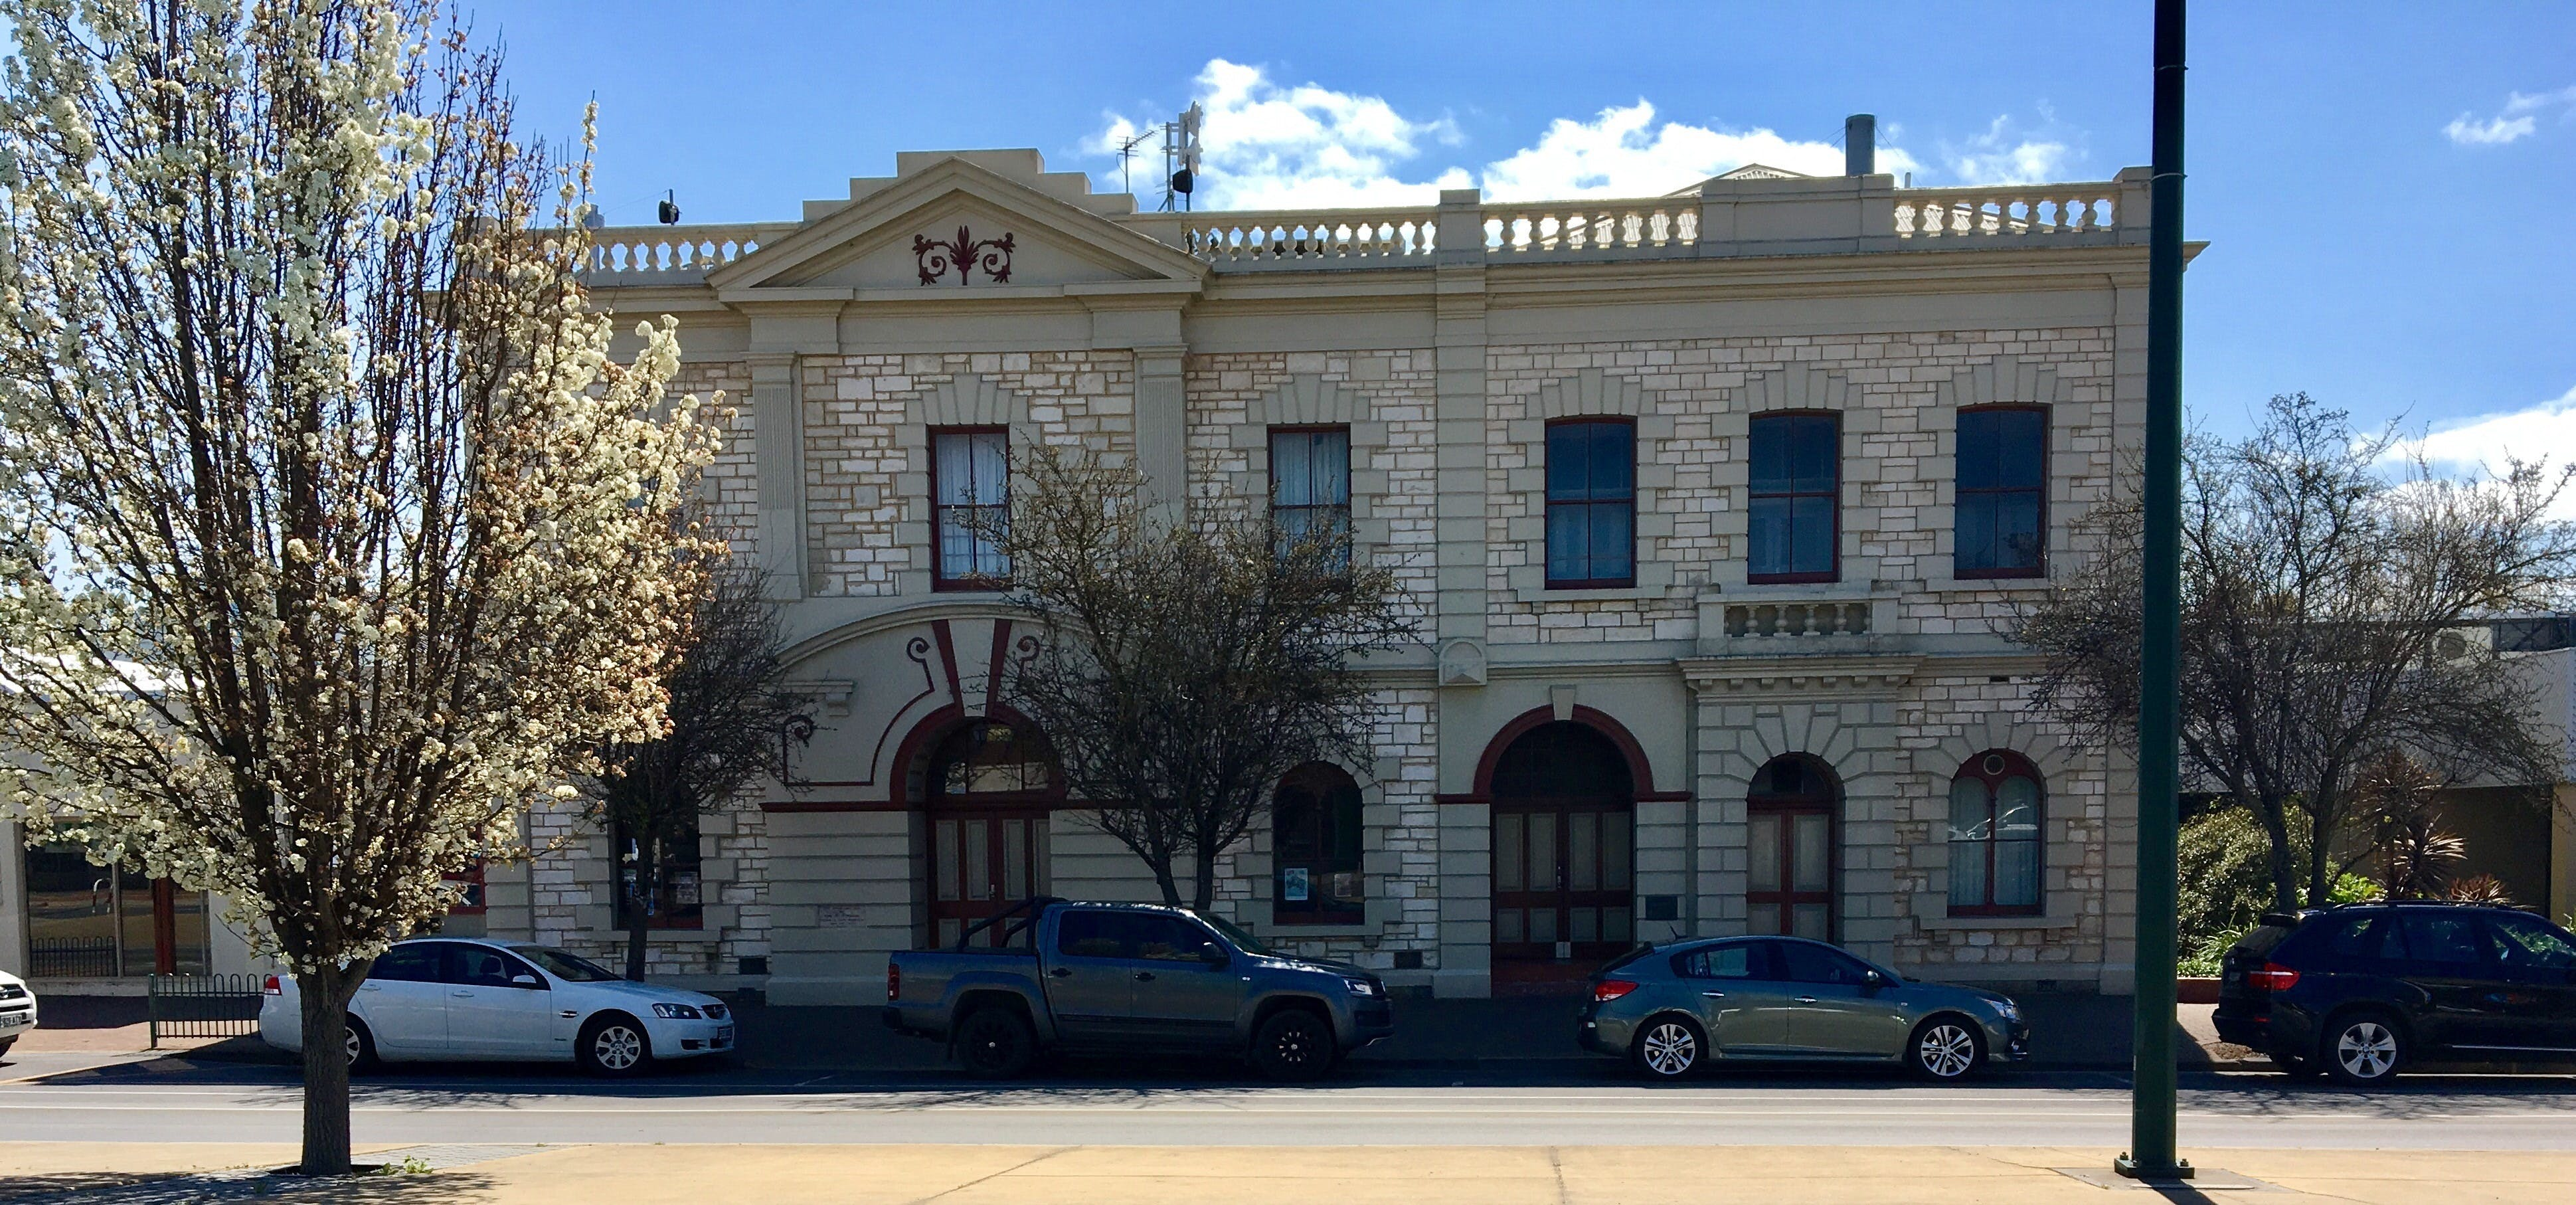 Naracoorte Town Hall - Tourism Cairns